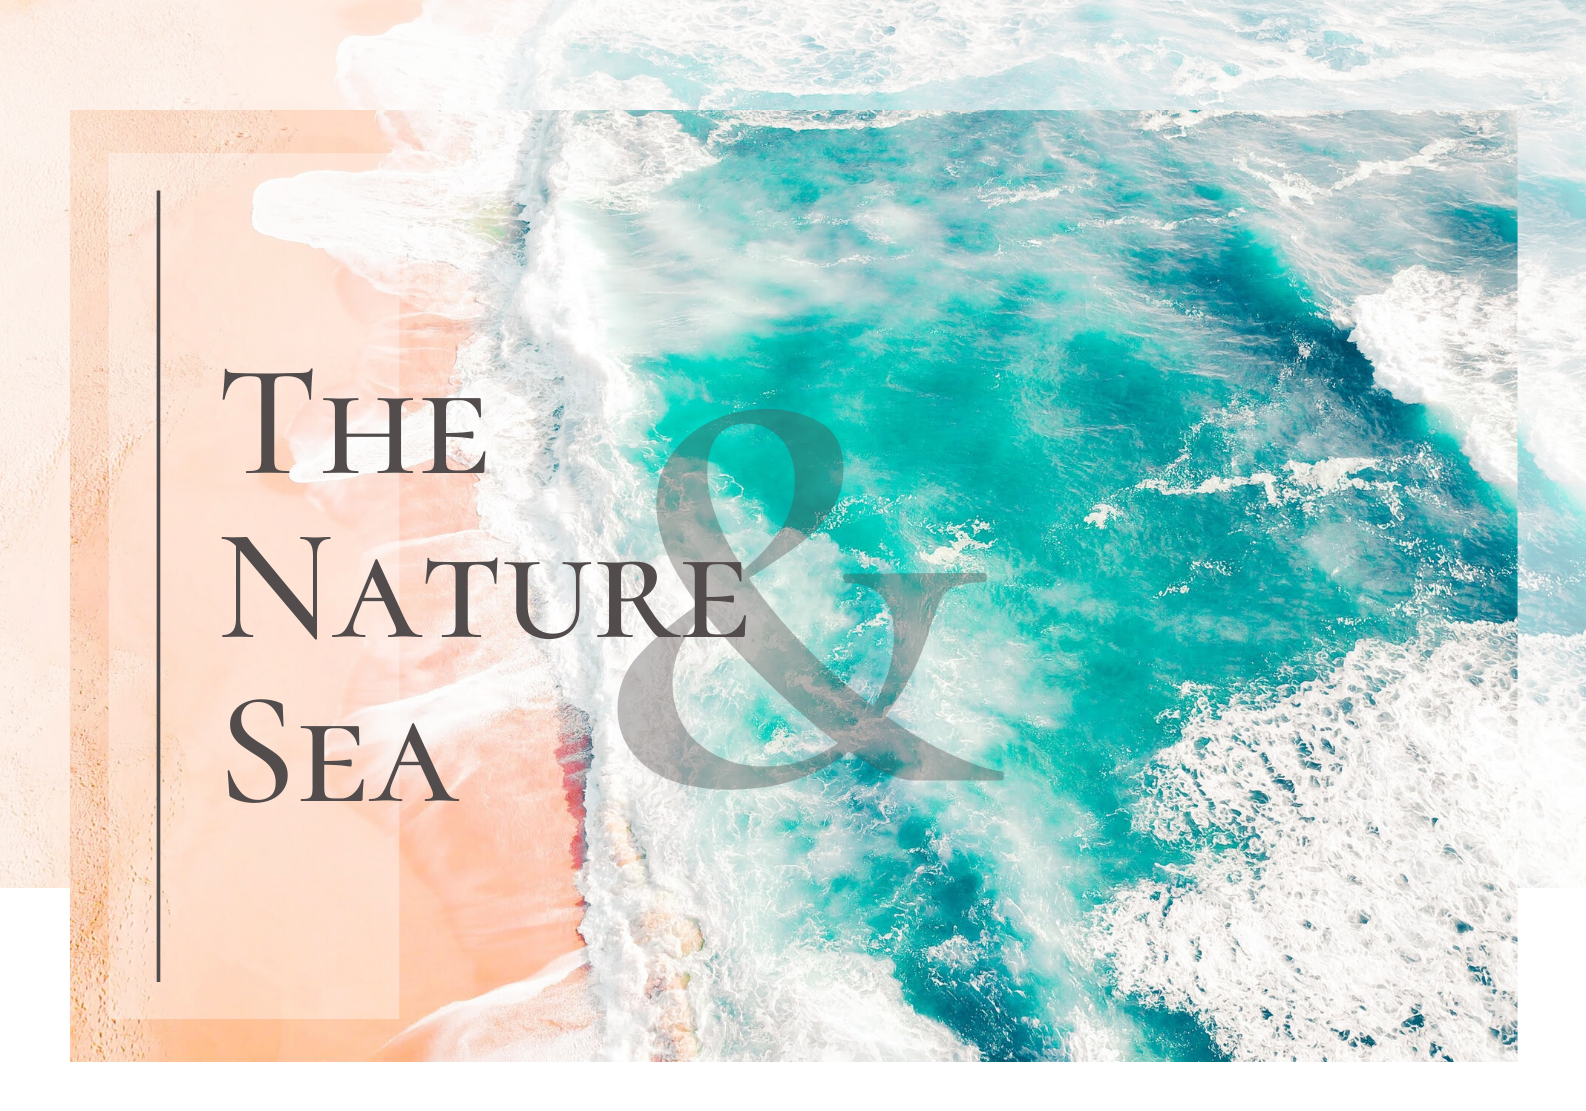 THE NATURE & SEA